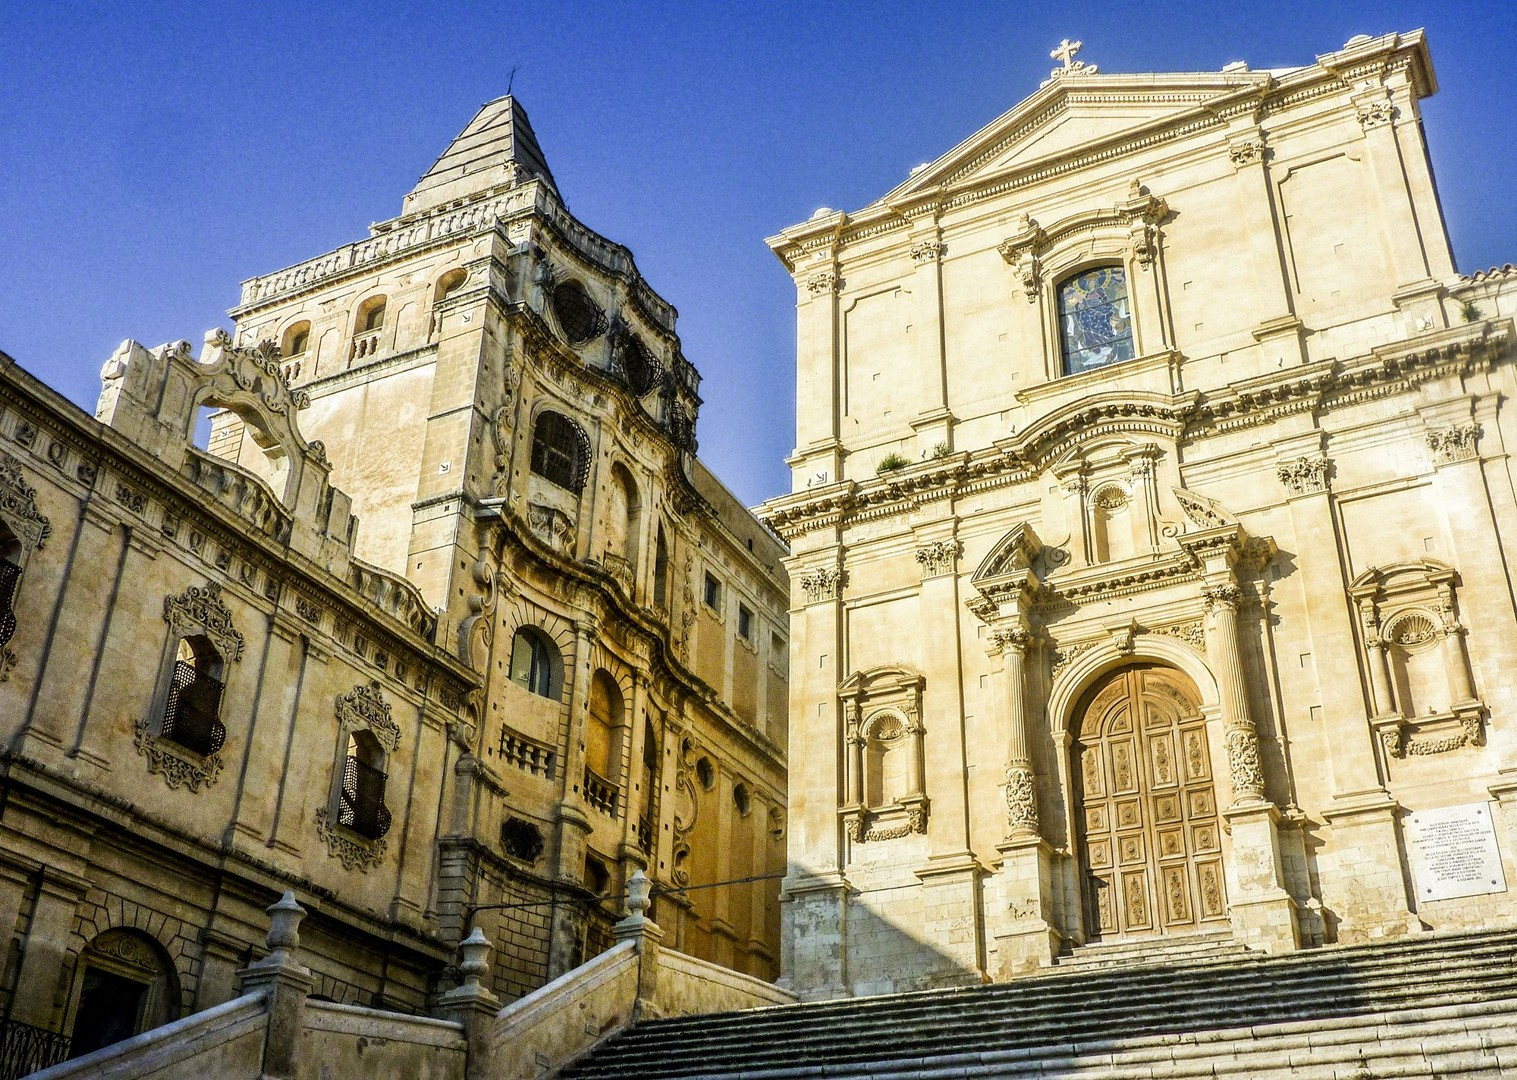 baroque-architecture-sicily-italy-modica-buildings.jpg - Italy - Sicily - Self-Guided Leisure Cycling Holiday - Italia Leisure and Family Cycling